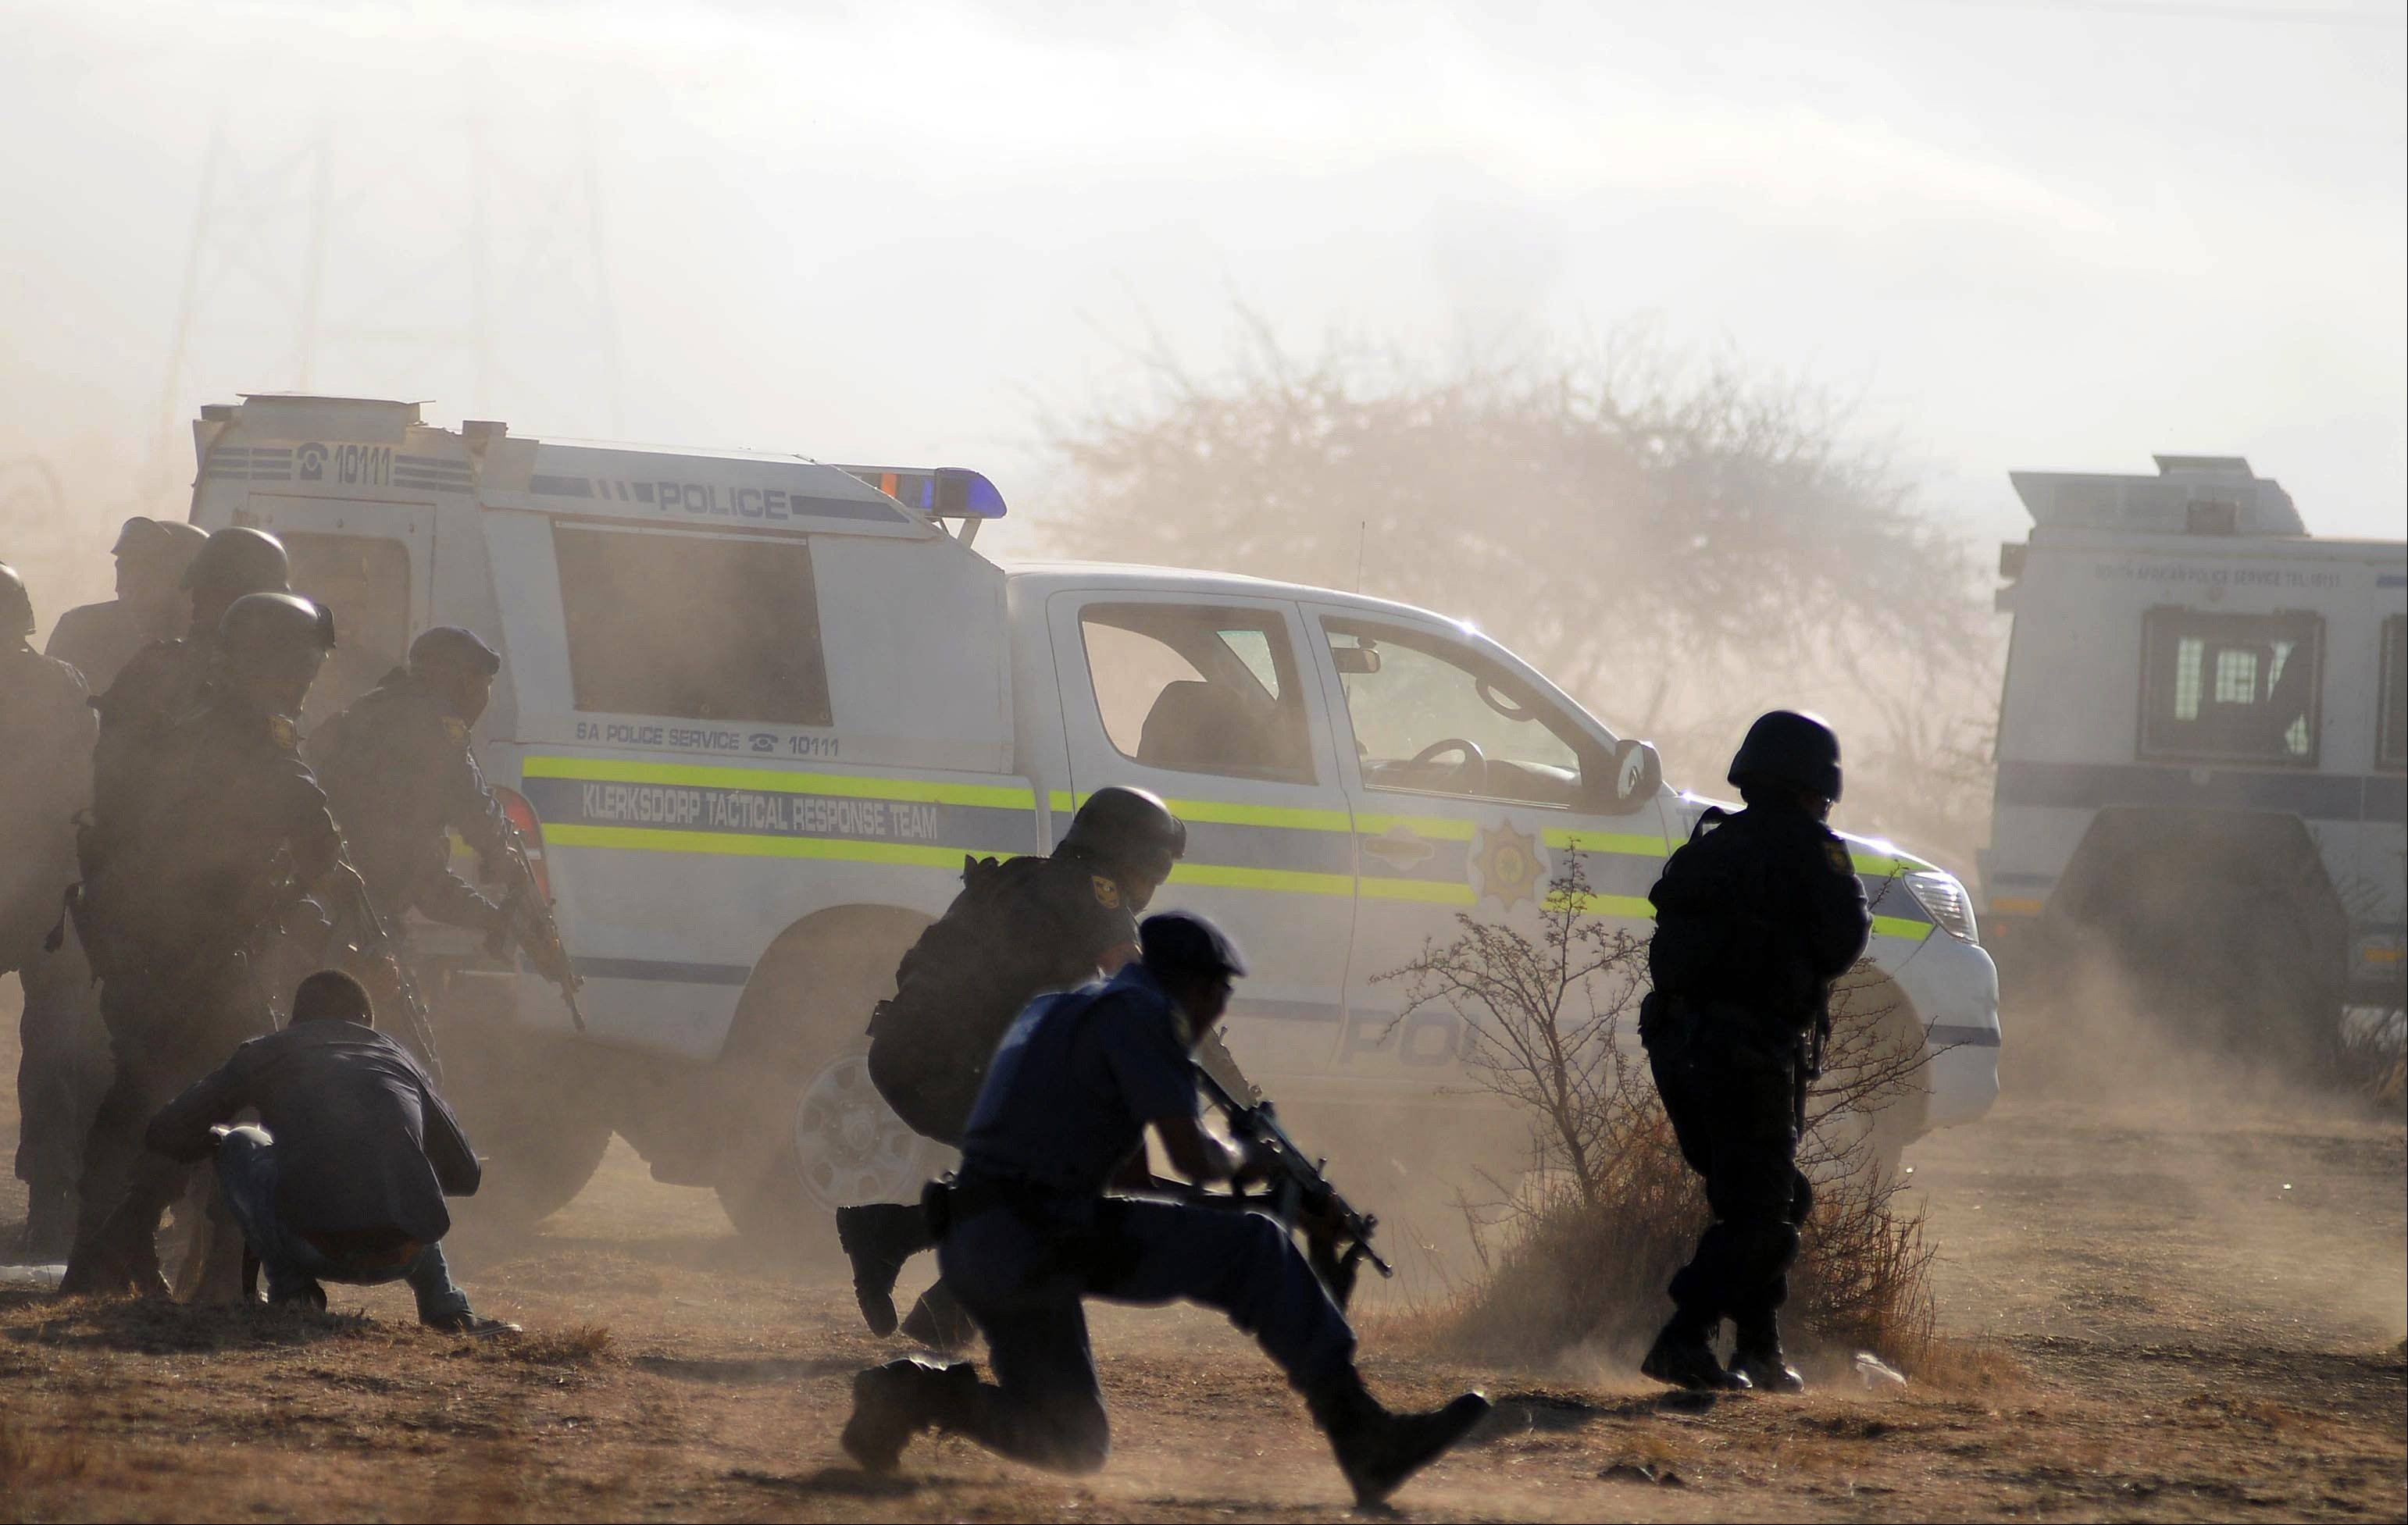 Policemen surrounded by teargas and dust open fire Thursday on striking miners at the Lonmin Platinum Mine near Rustenburg, South Africa.